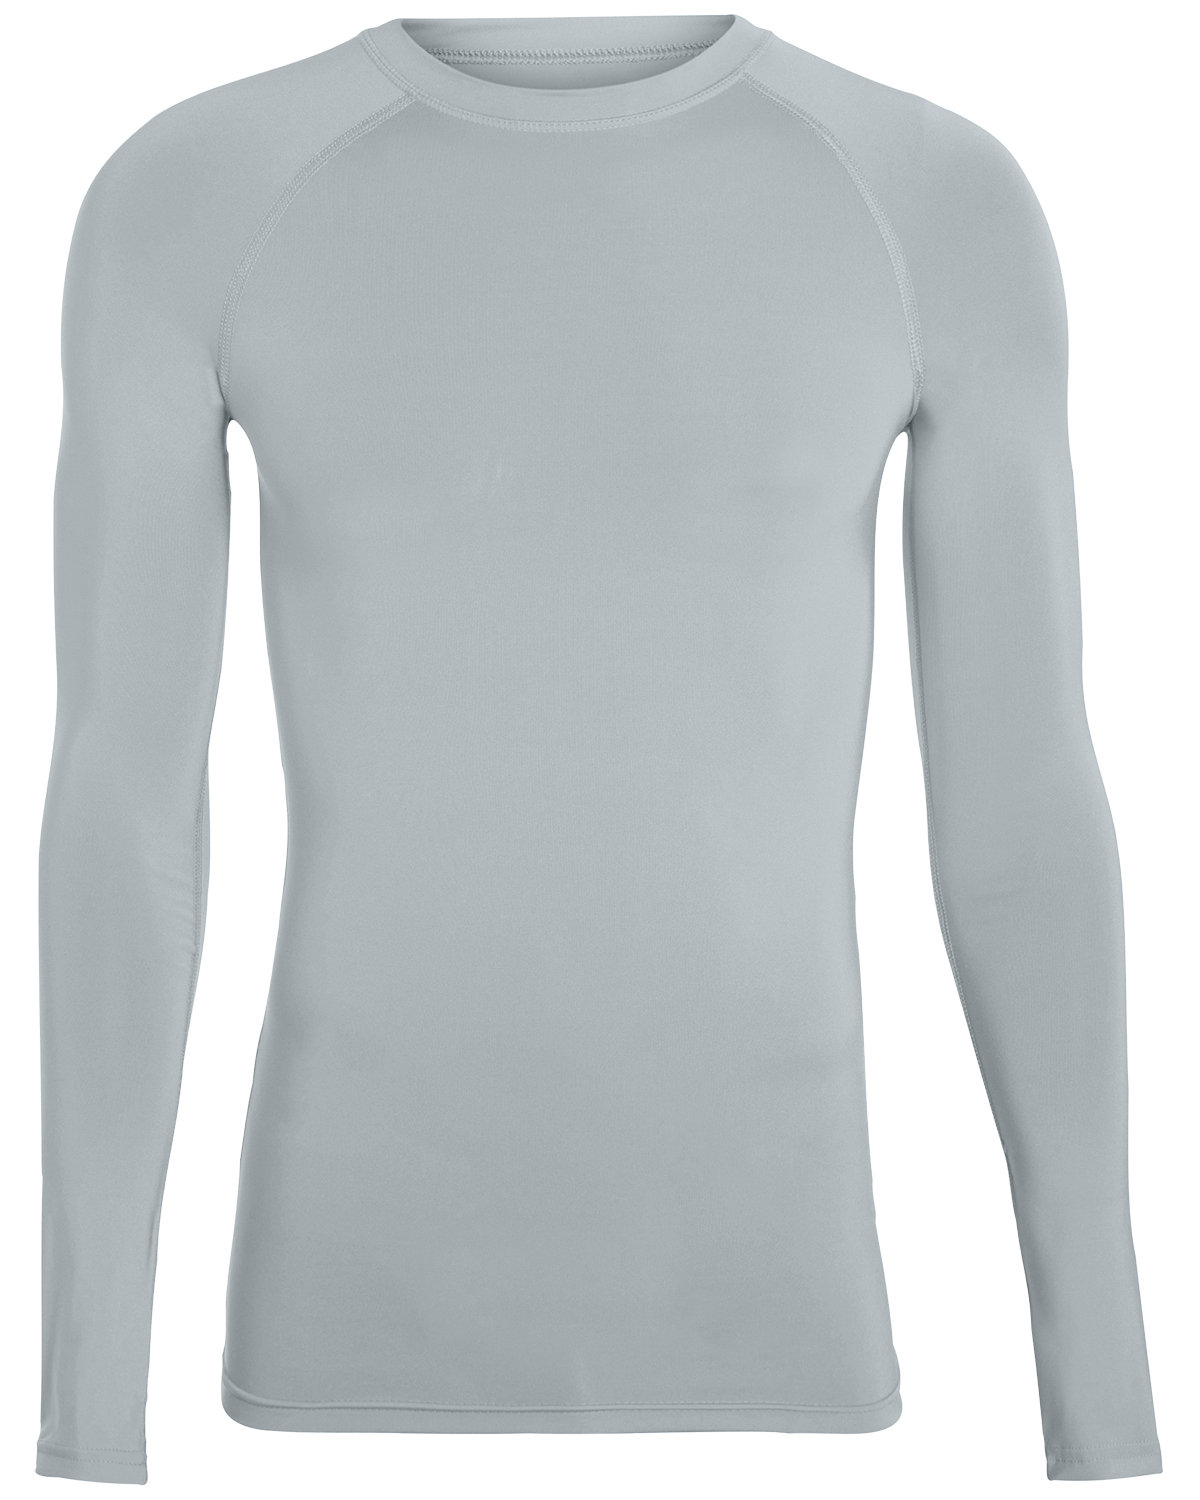 Augusta Drop Ship Adult Hyperform Long-Sleeve Compression Shirt SILVER